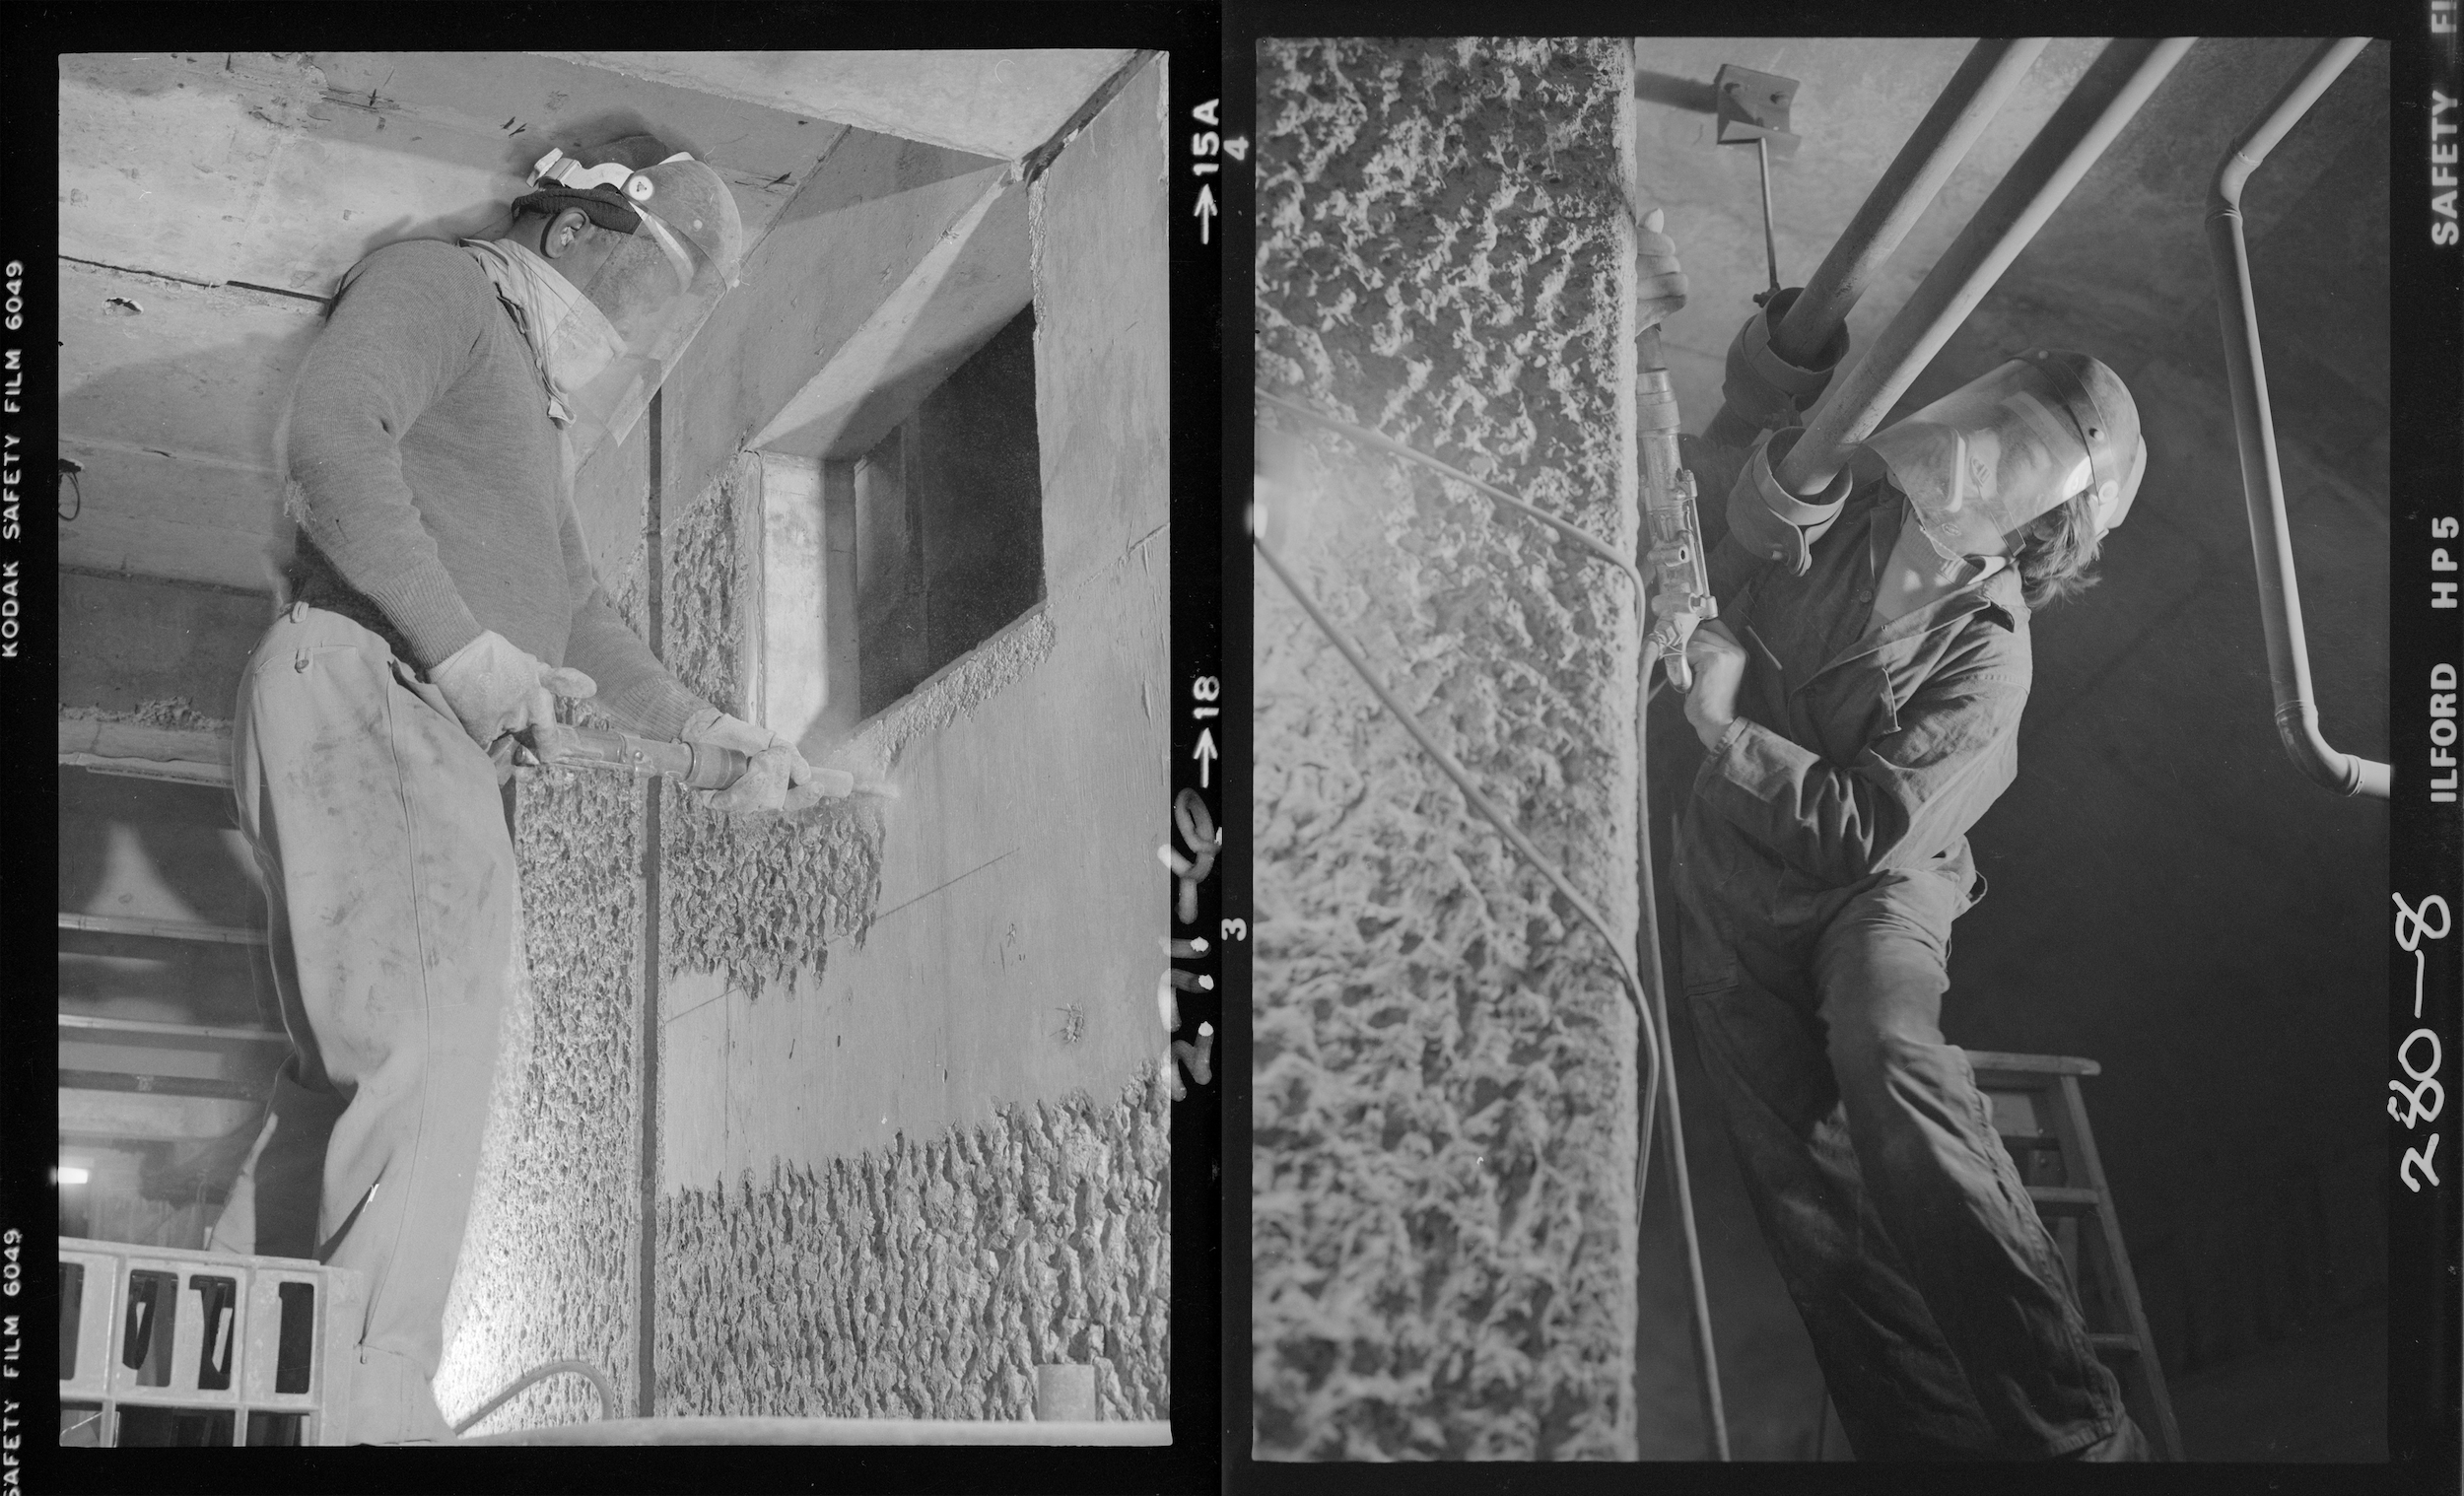 Archival images of construction workers bush-hammering the concrete walls by hand at the Barbican, November 1979. Photographs: Peter Bloomfield.